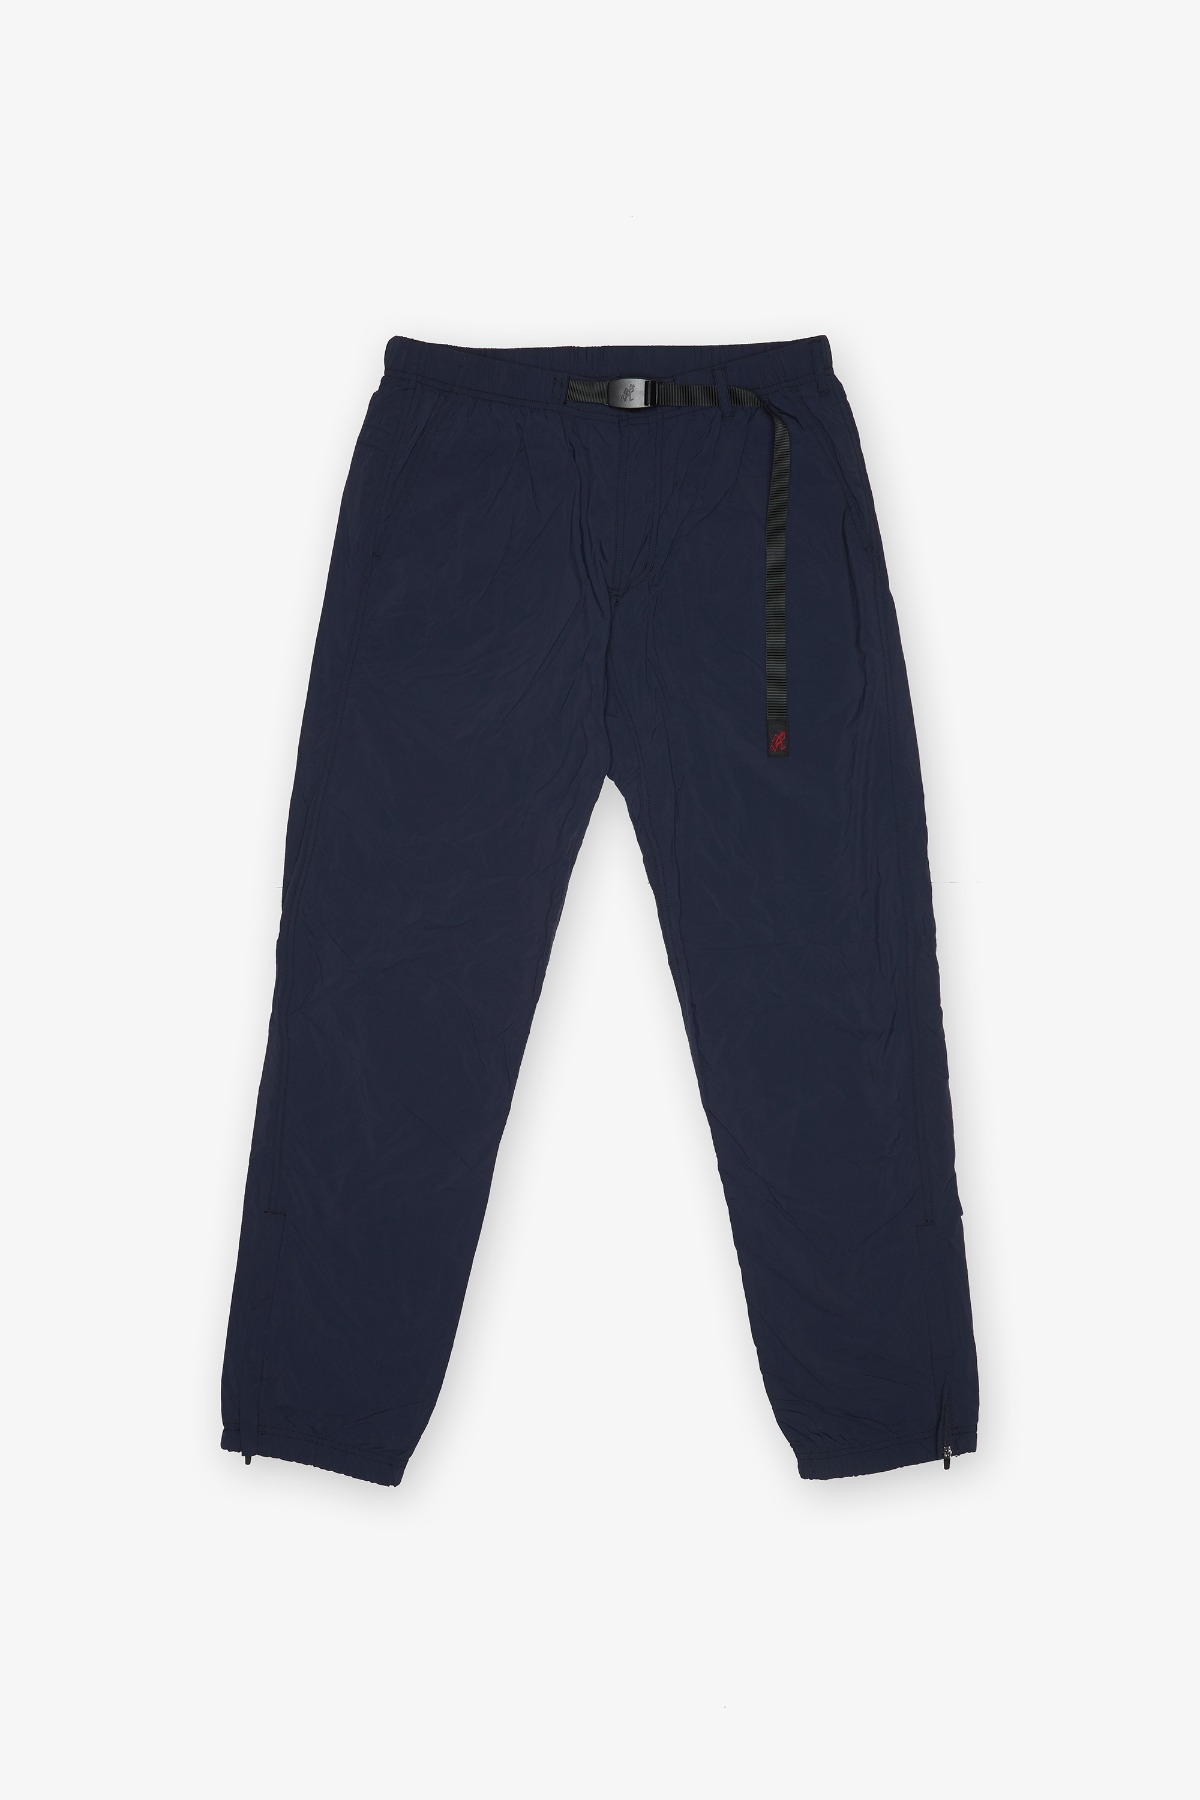 PACKABLE TRUCK PANTS DOUBLE NAVY